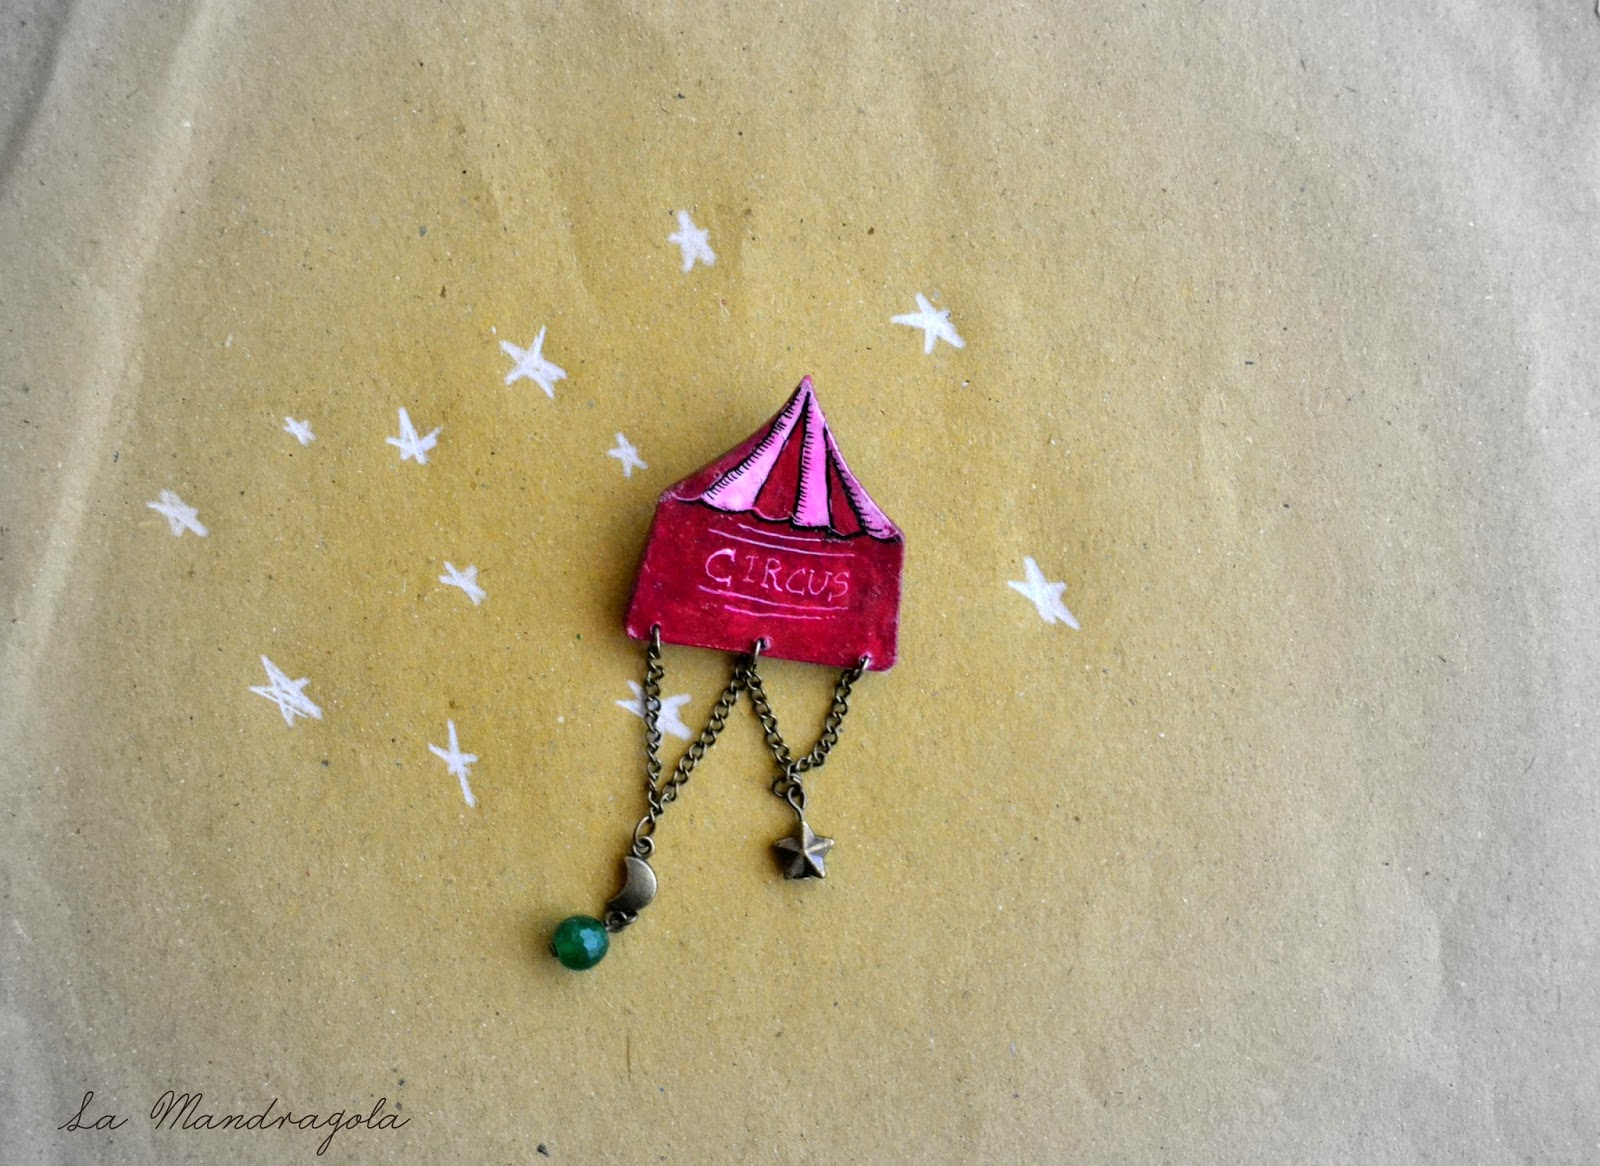 Night Circus  - freak show - brooch - la mandragola - Flavia Luglioli - illustration - victorian - etsy